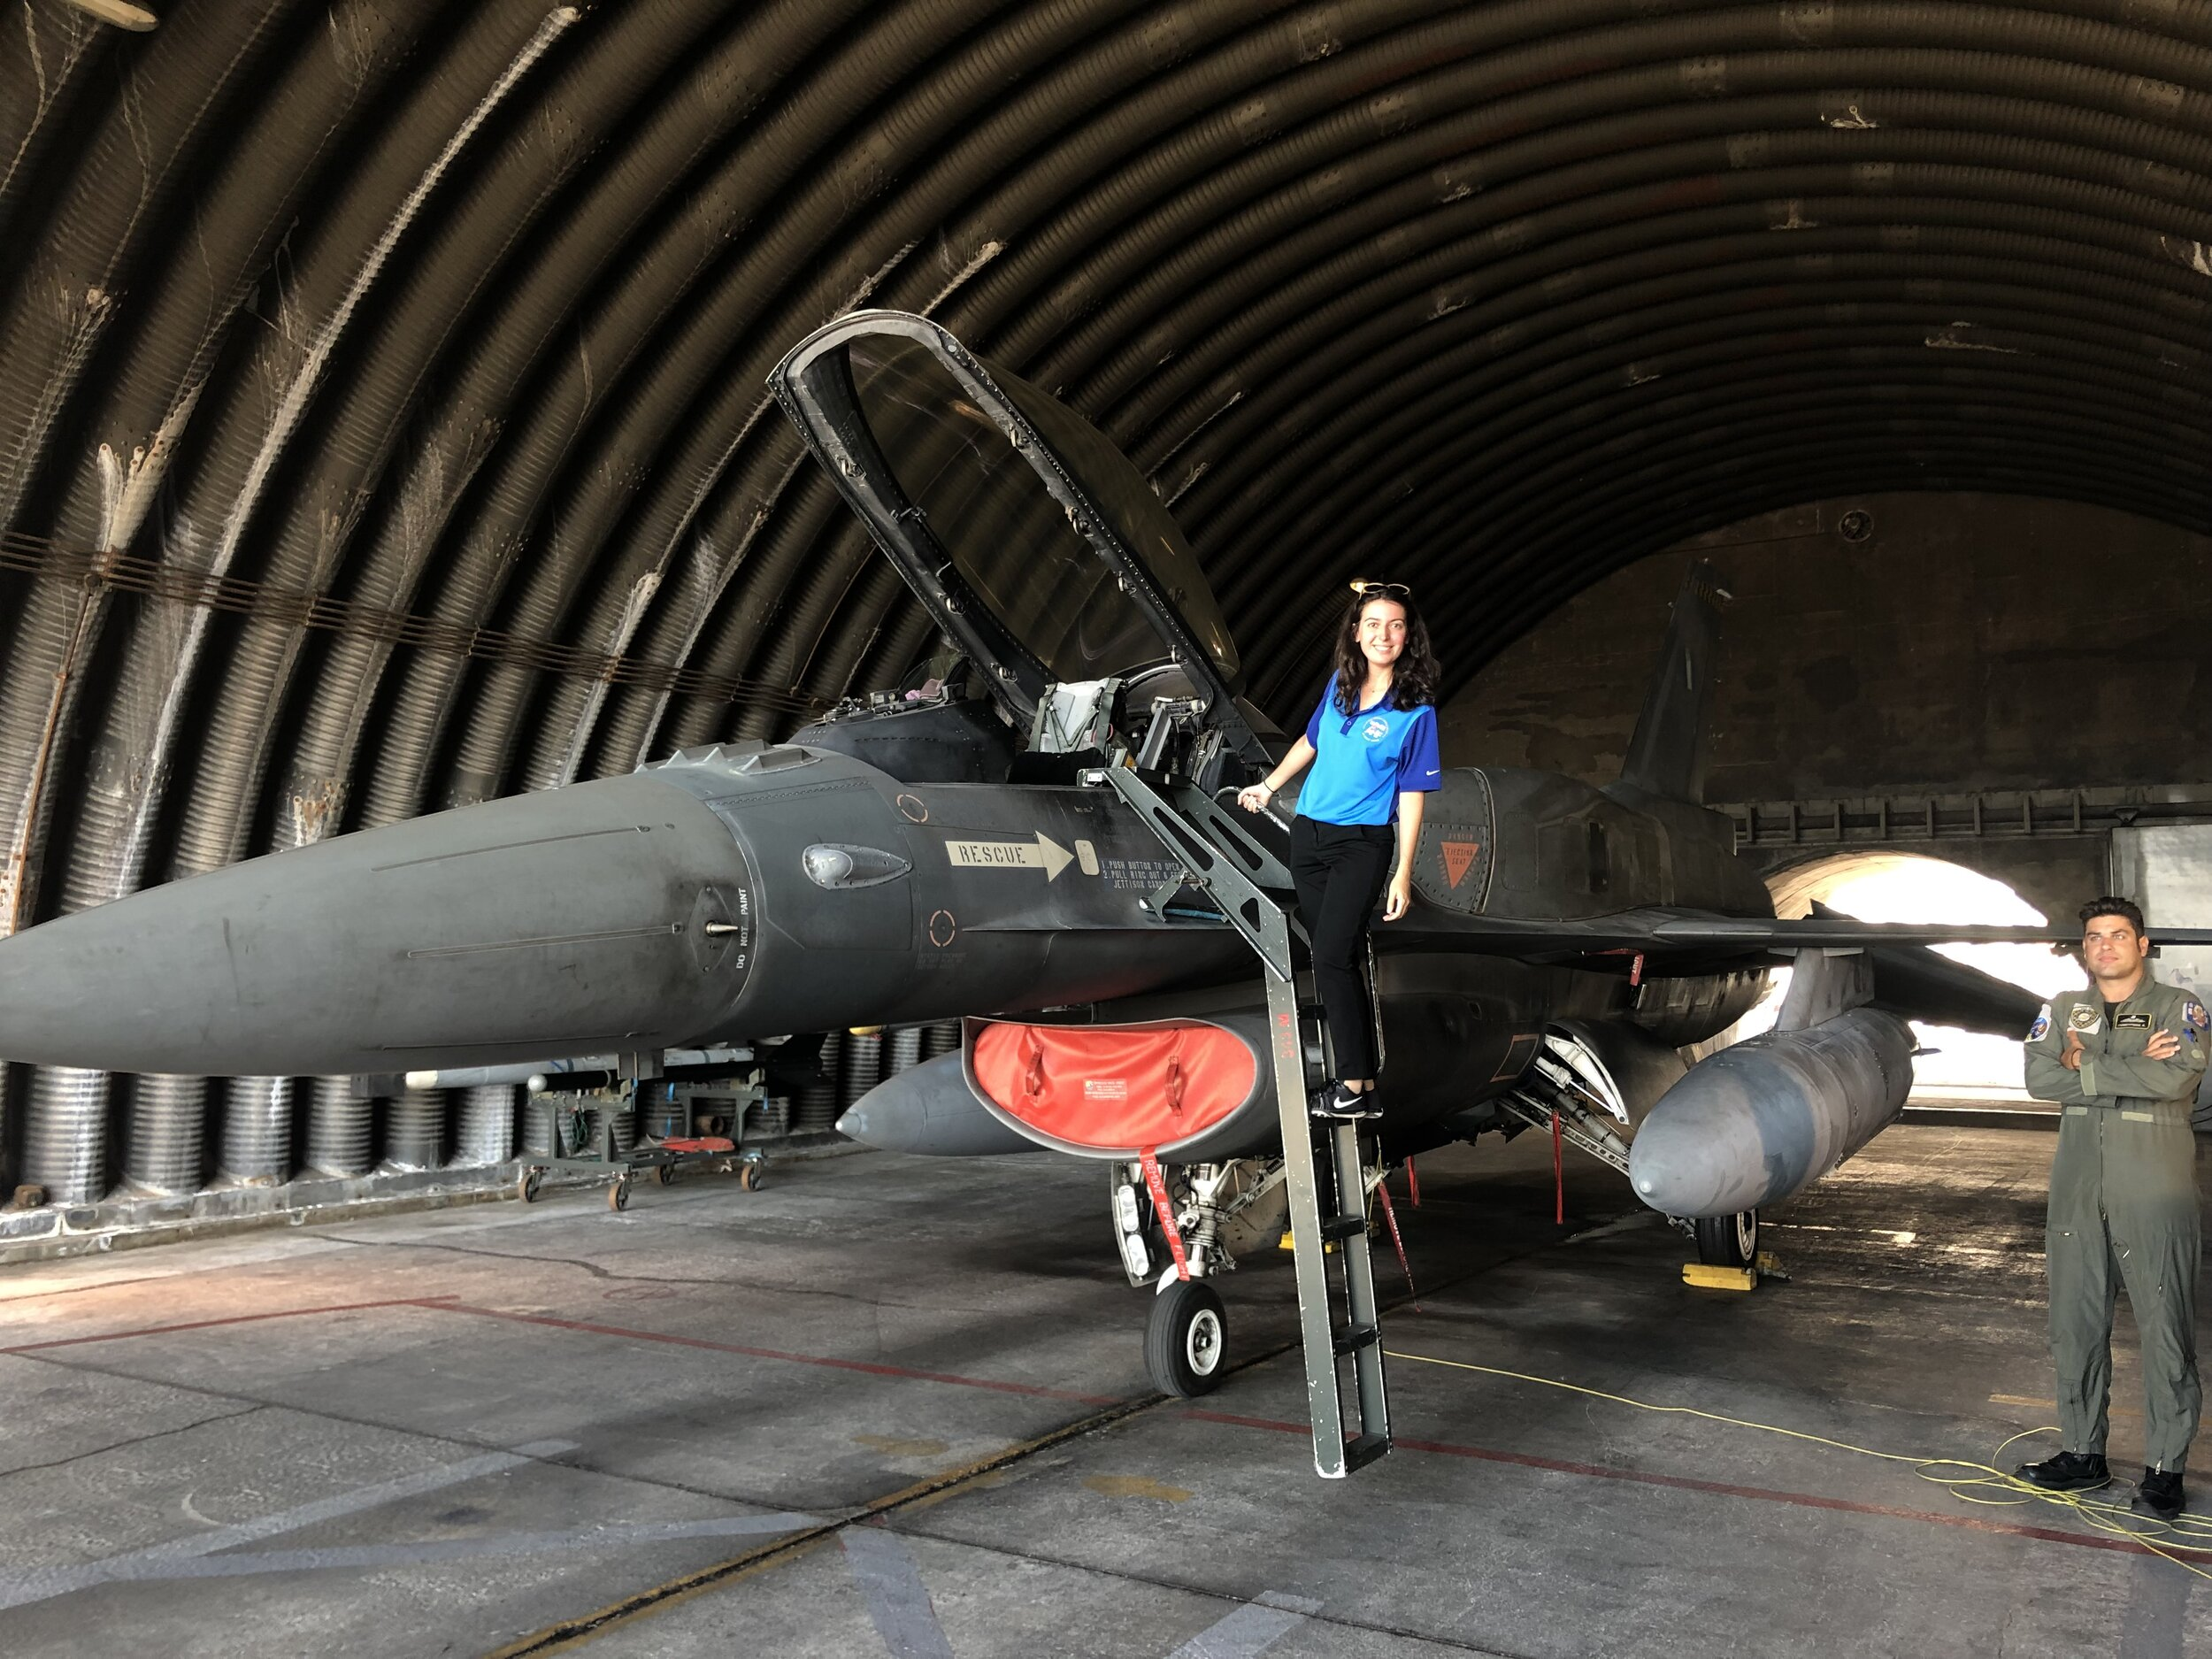 Student Alexandra Choate posing with a F-16